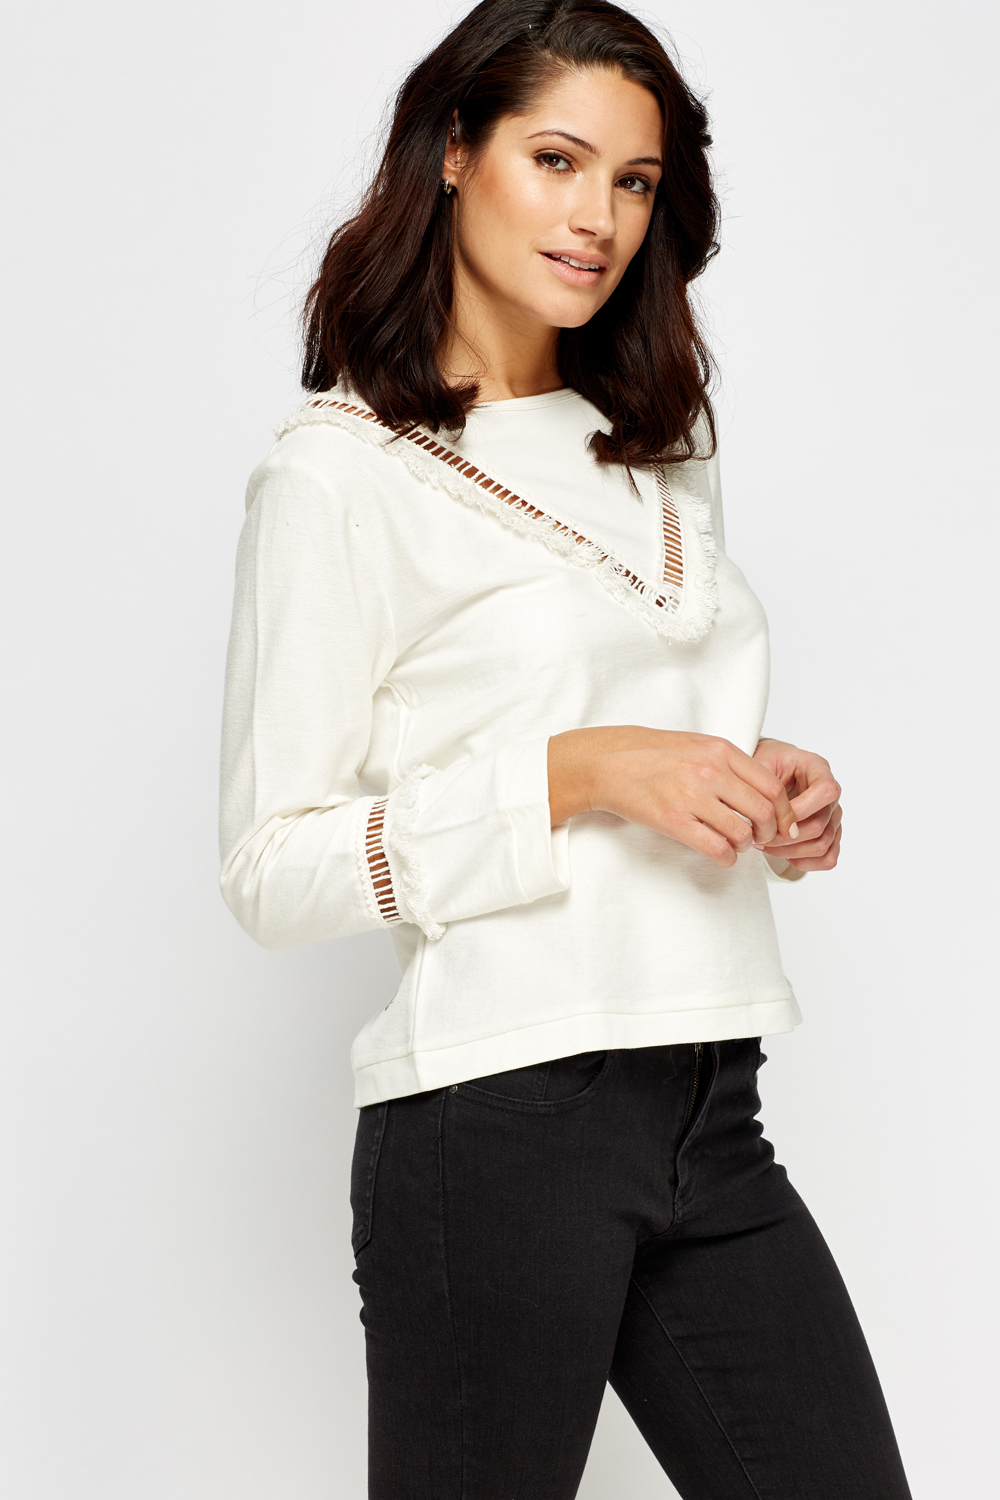 21cb1e285399 Off White Frayed Cut Jumper - Just £5